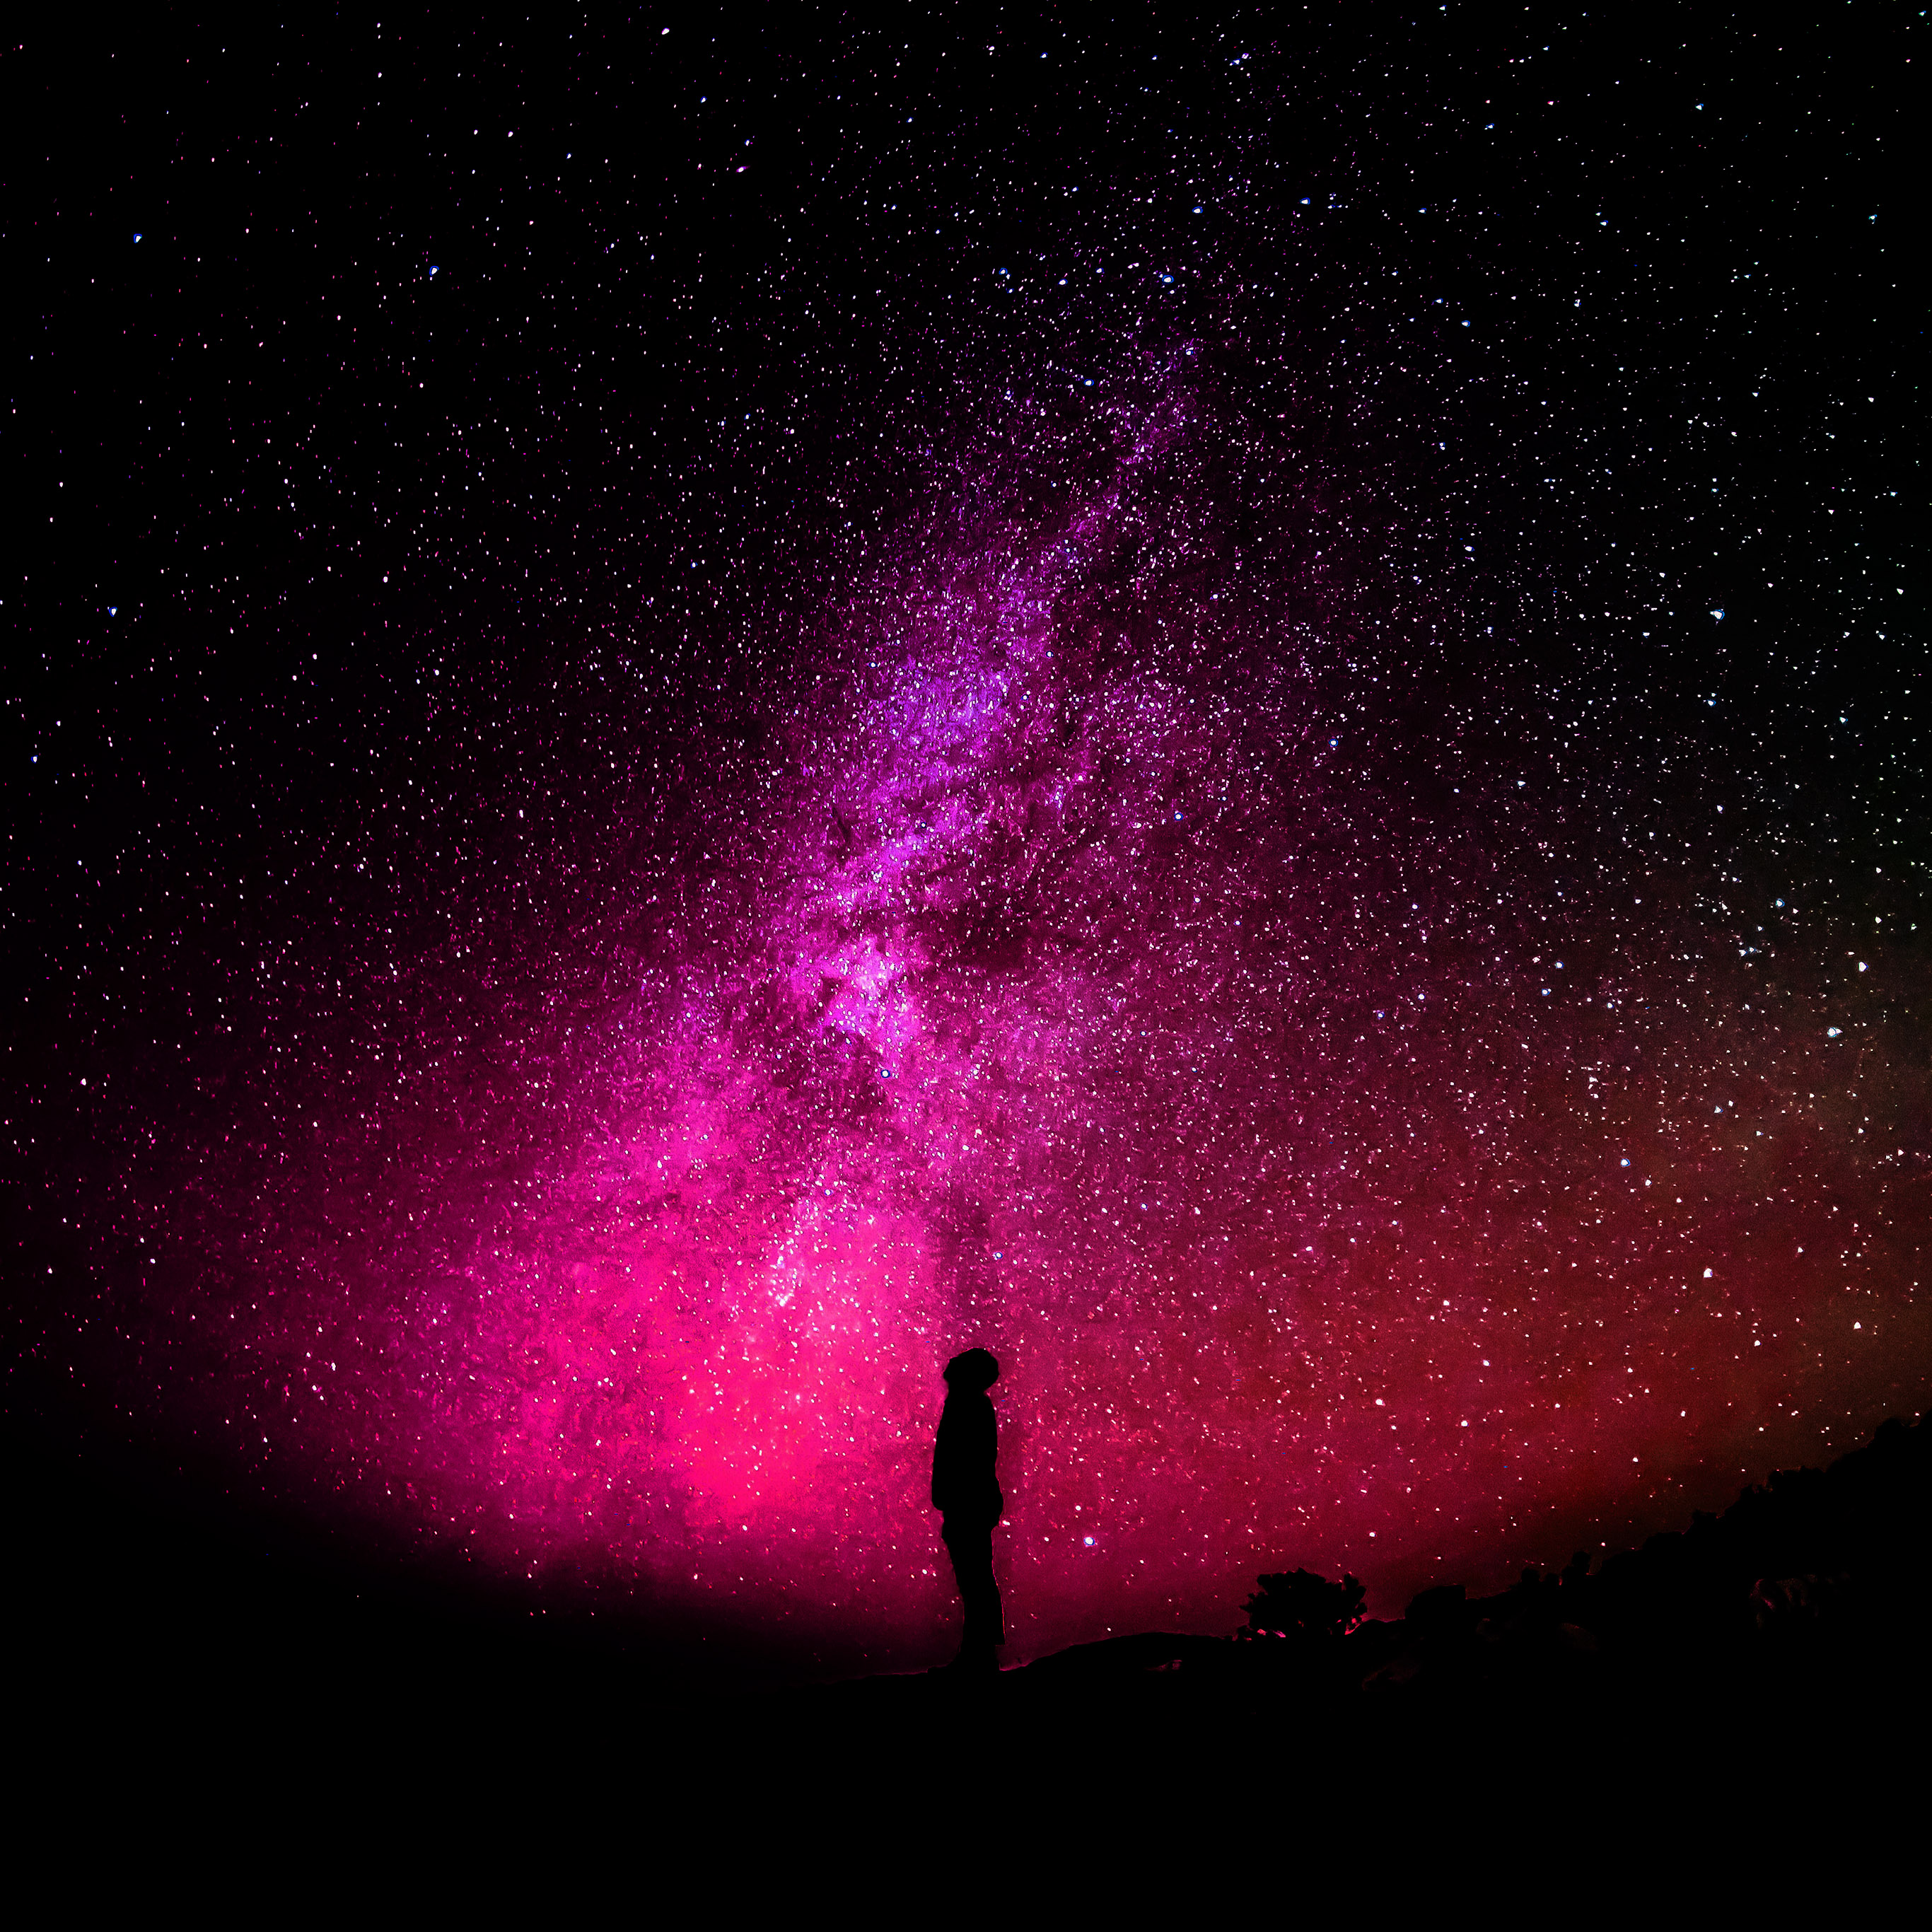 I love papers nb17 sky galaxy milkyway space night red - Space night sky wallpaper ...